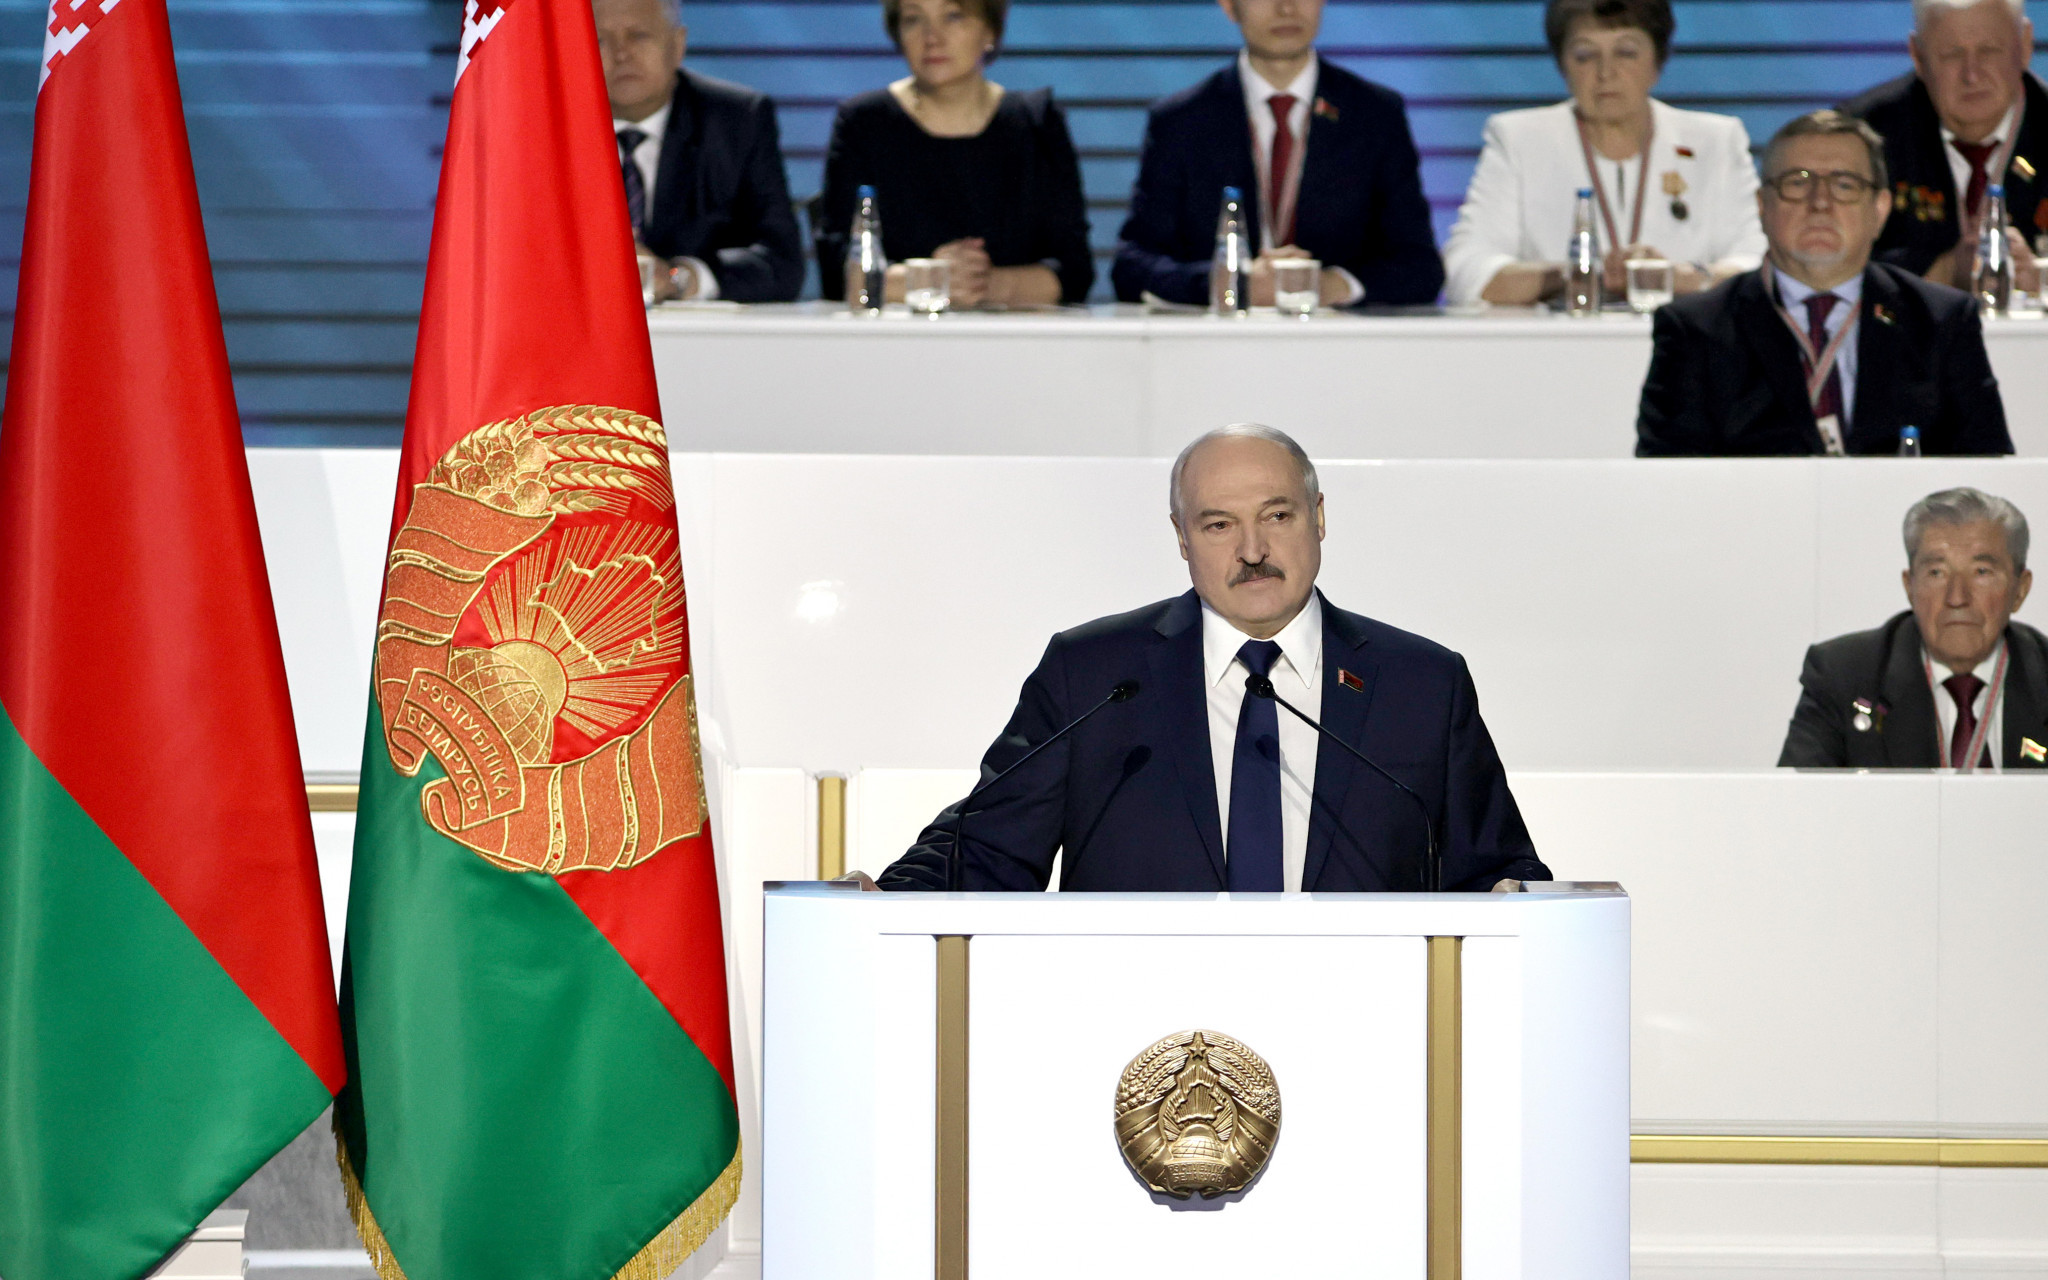 Belarus President Alexander Lukashenko and his son Viktor are already subject to IOC sanctions ©Getty Images